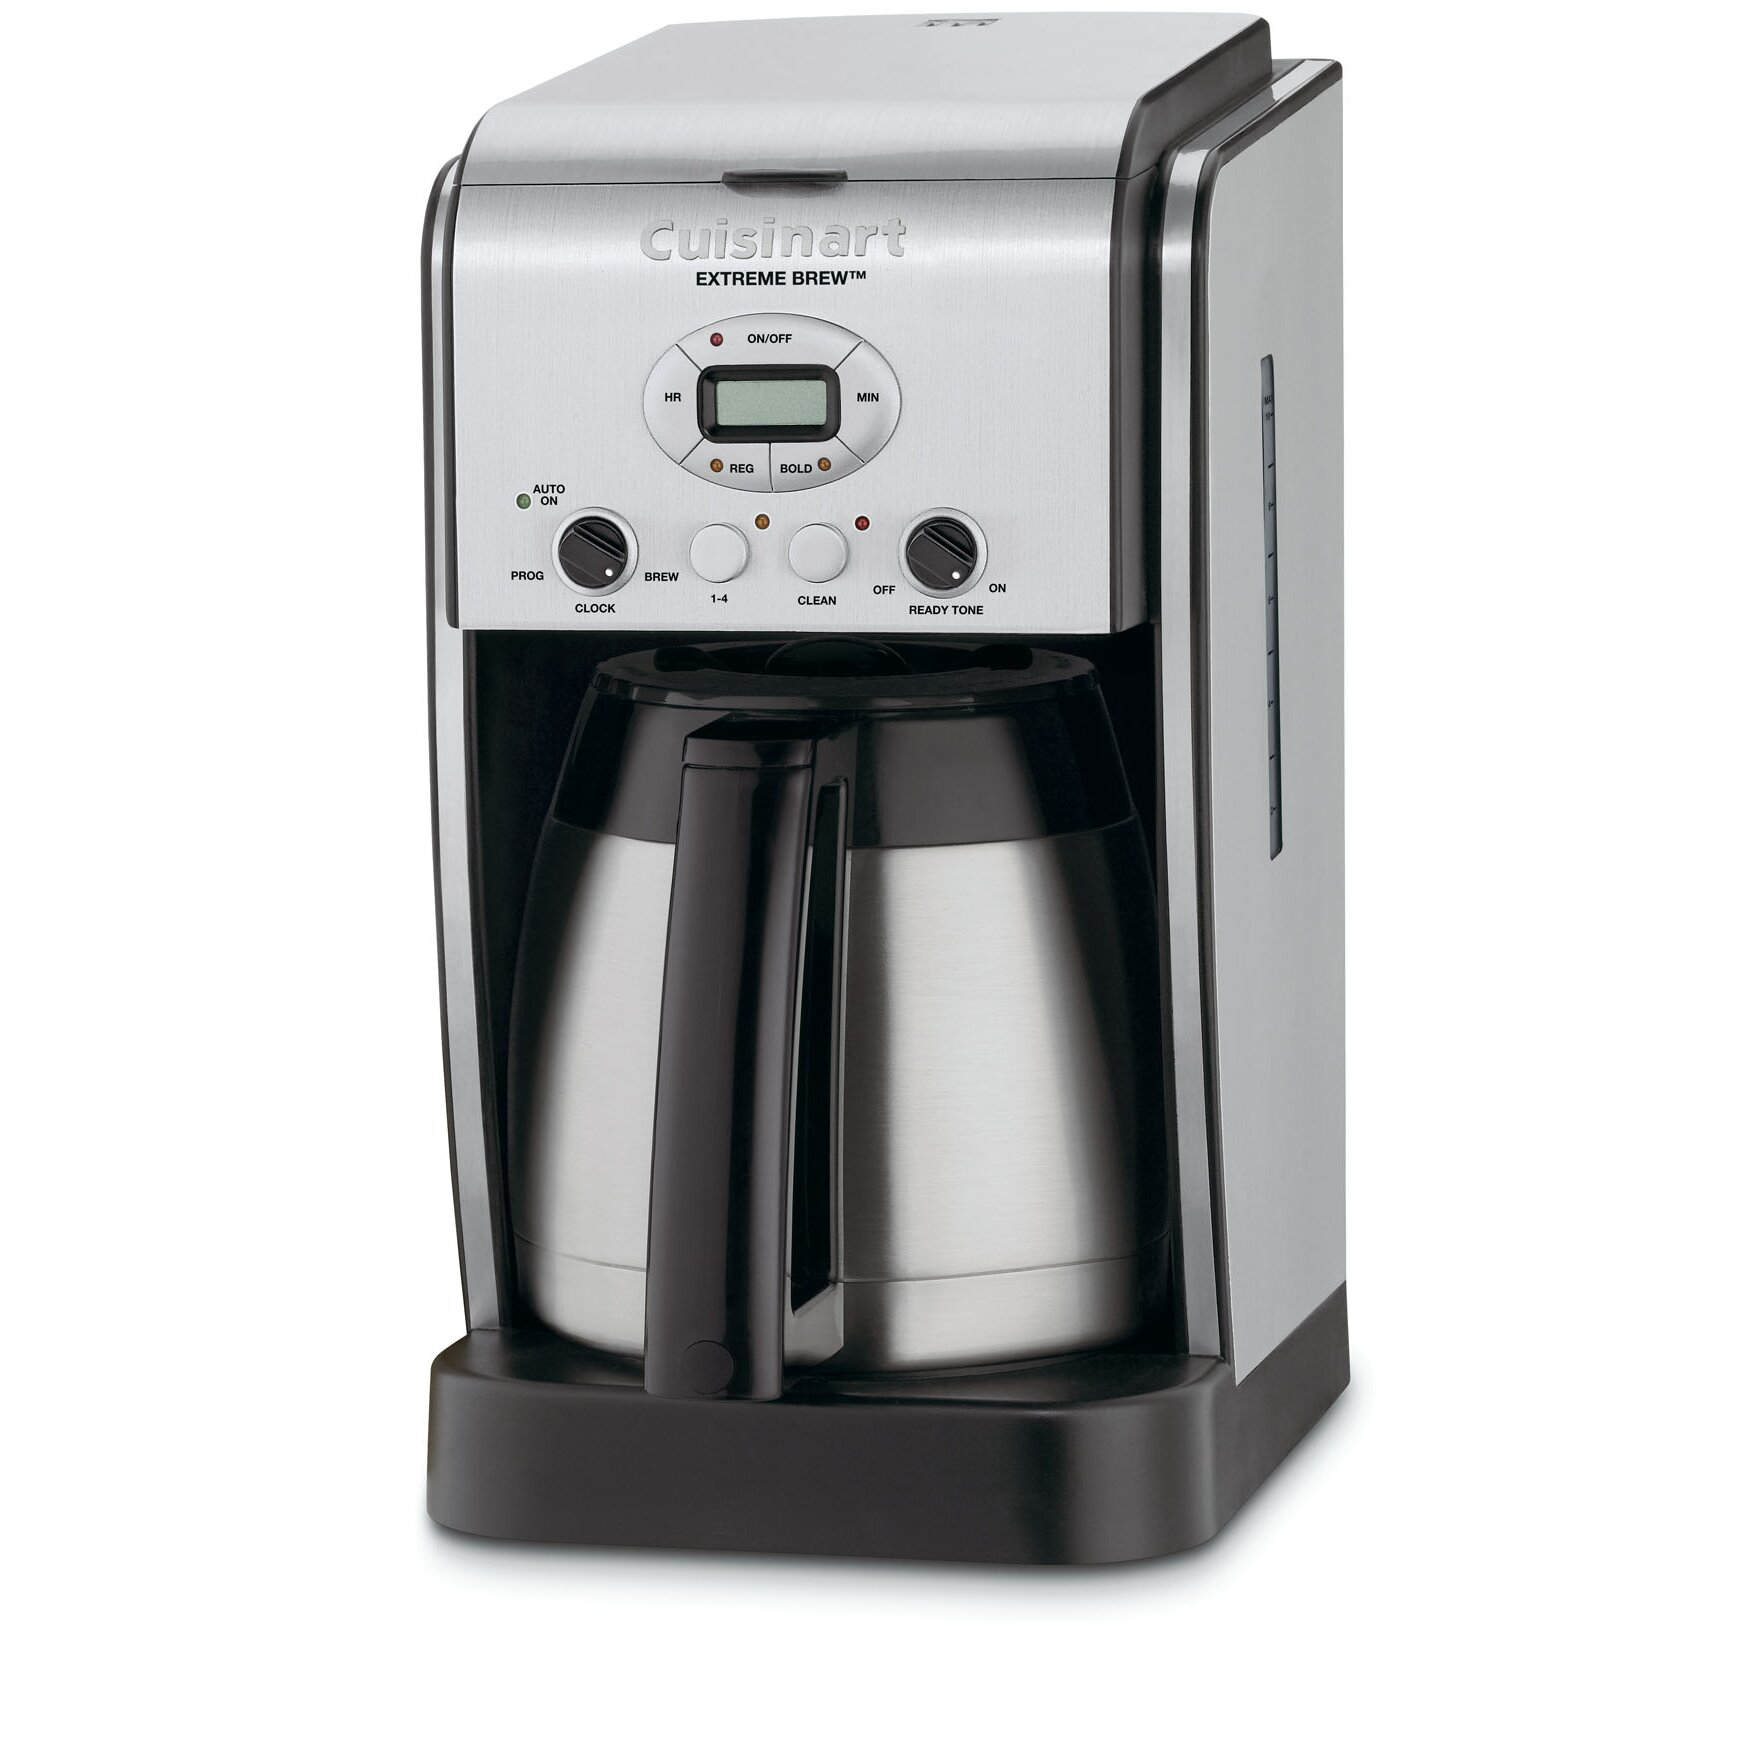 Cuisinart Coffee Maker Fire : Cuisinart Extreme Brew 10 Cup Thermal Programmable Coffee Maker & Reviews Wayfair